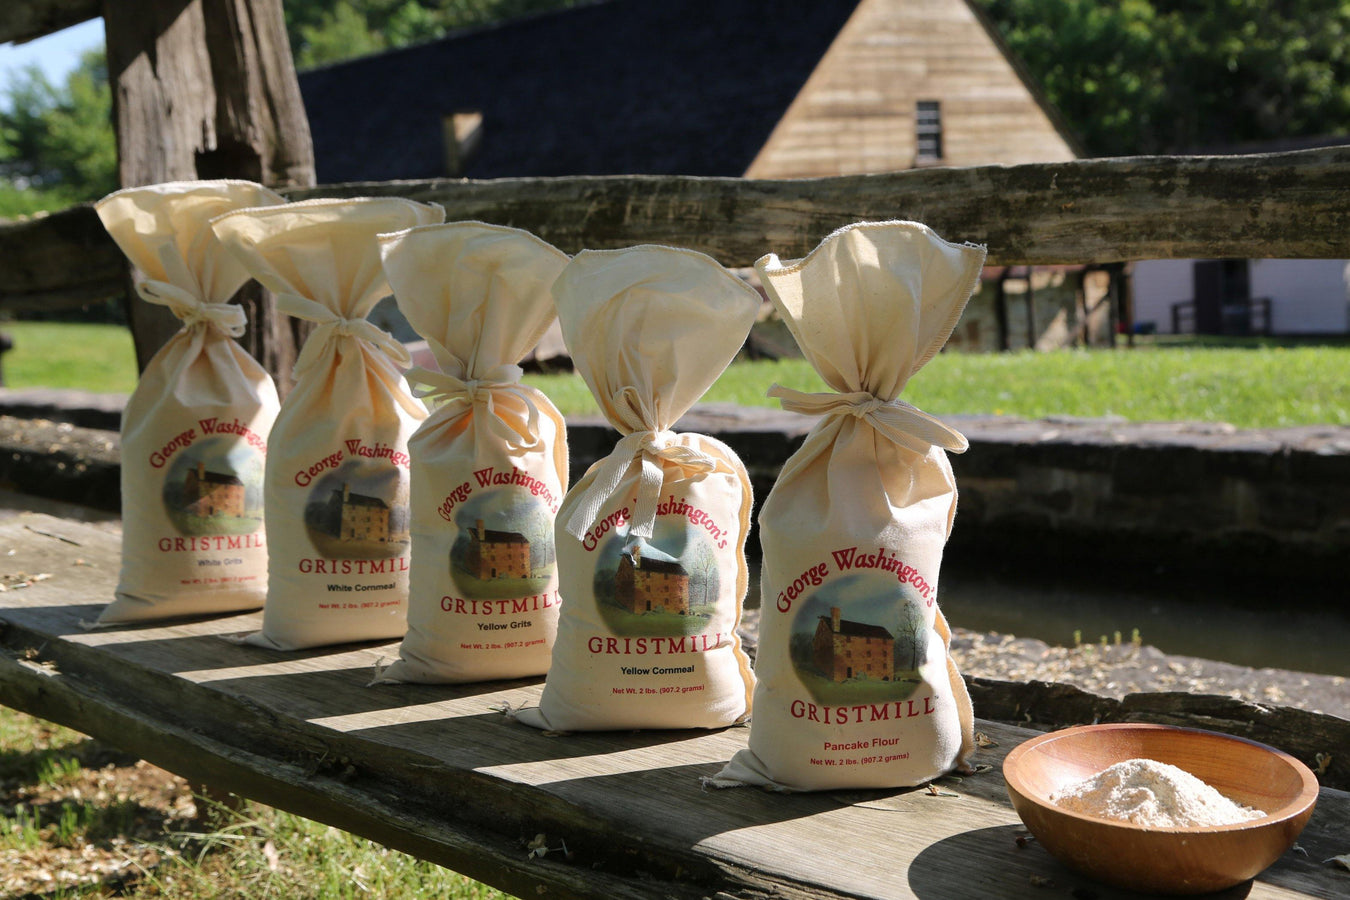 Gristmill Products